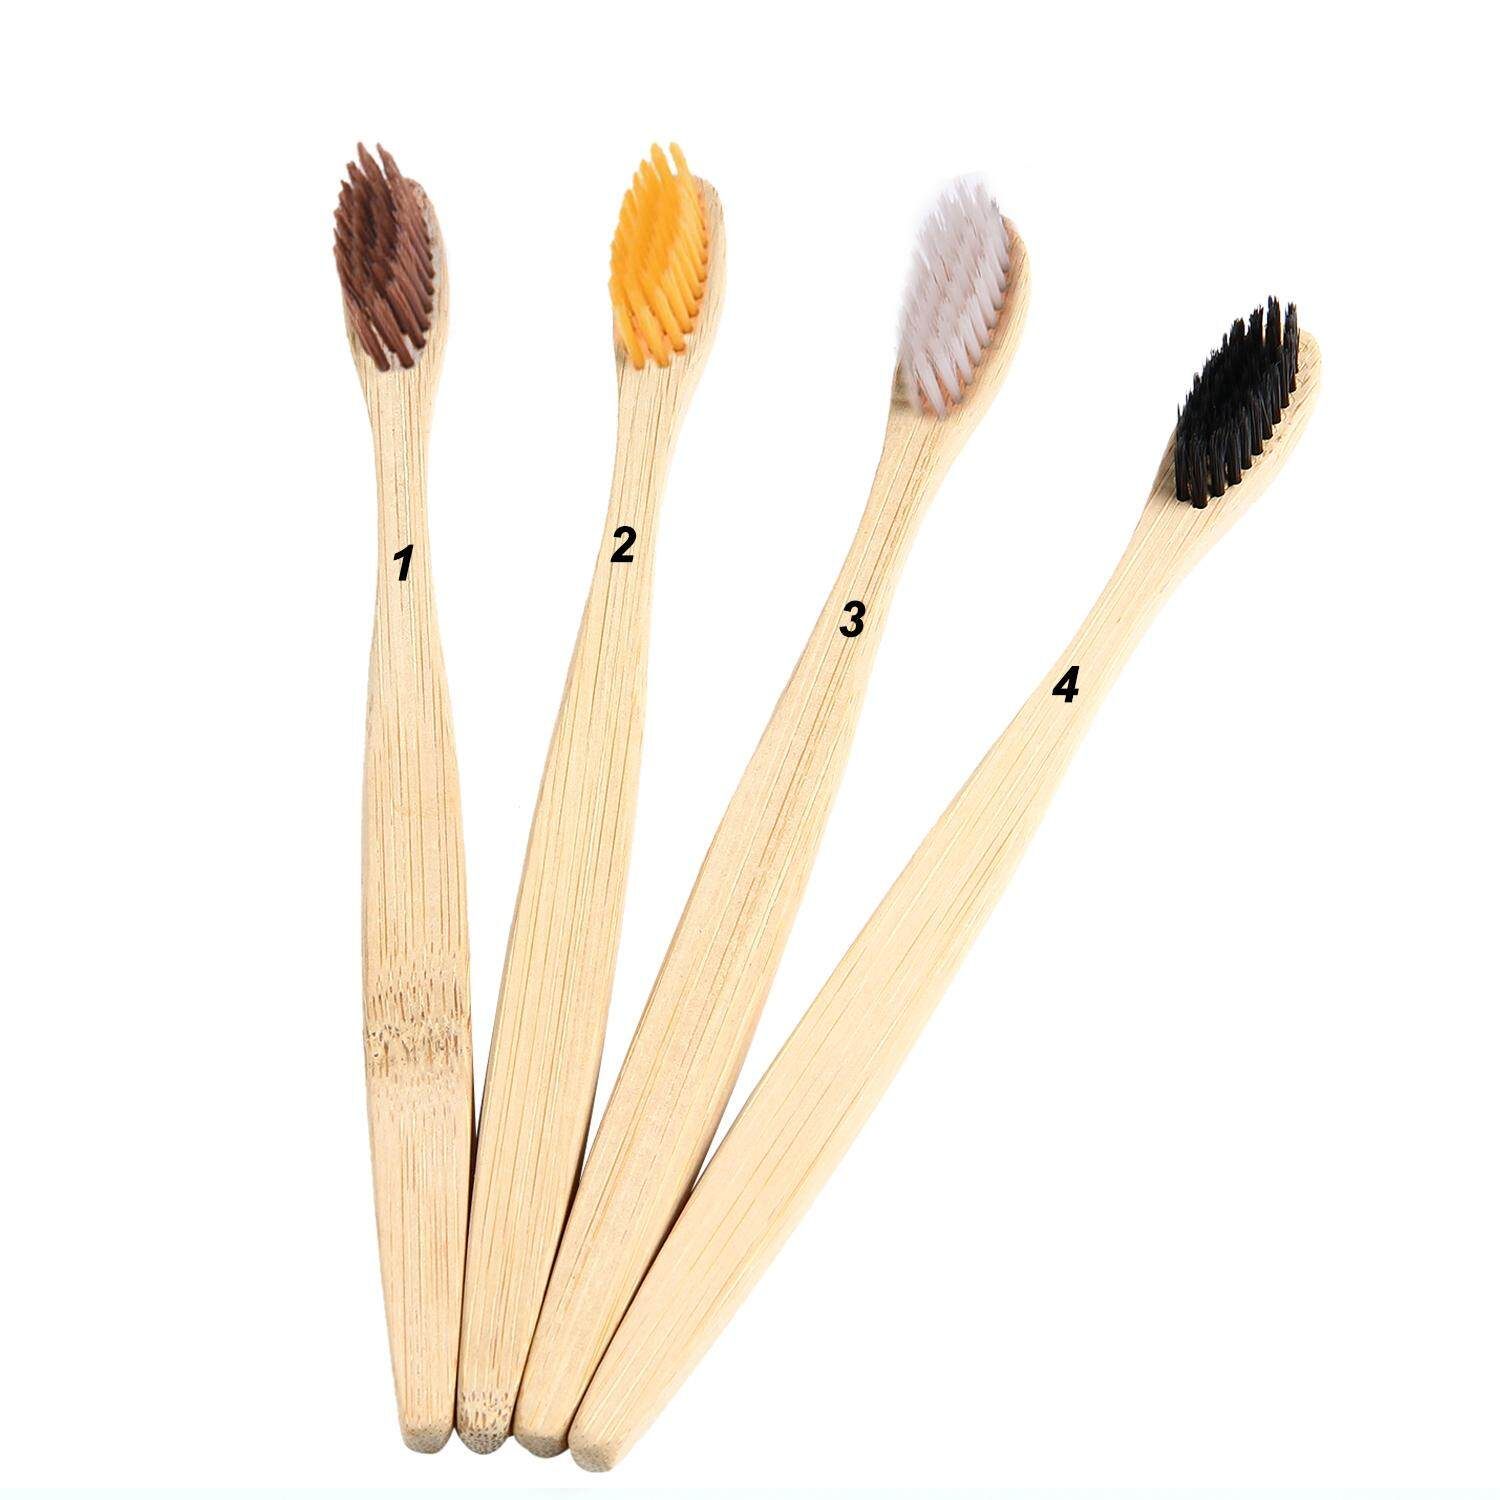 OrzBuy Natural Bamboo Toothbrush Individually Numbered, BPA Free Bristles, Pack Of 4 - intl